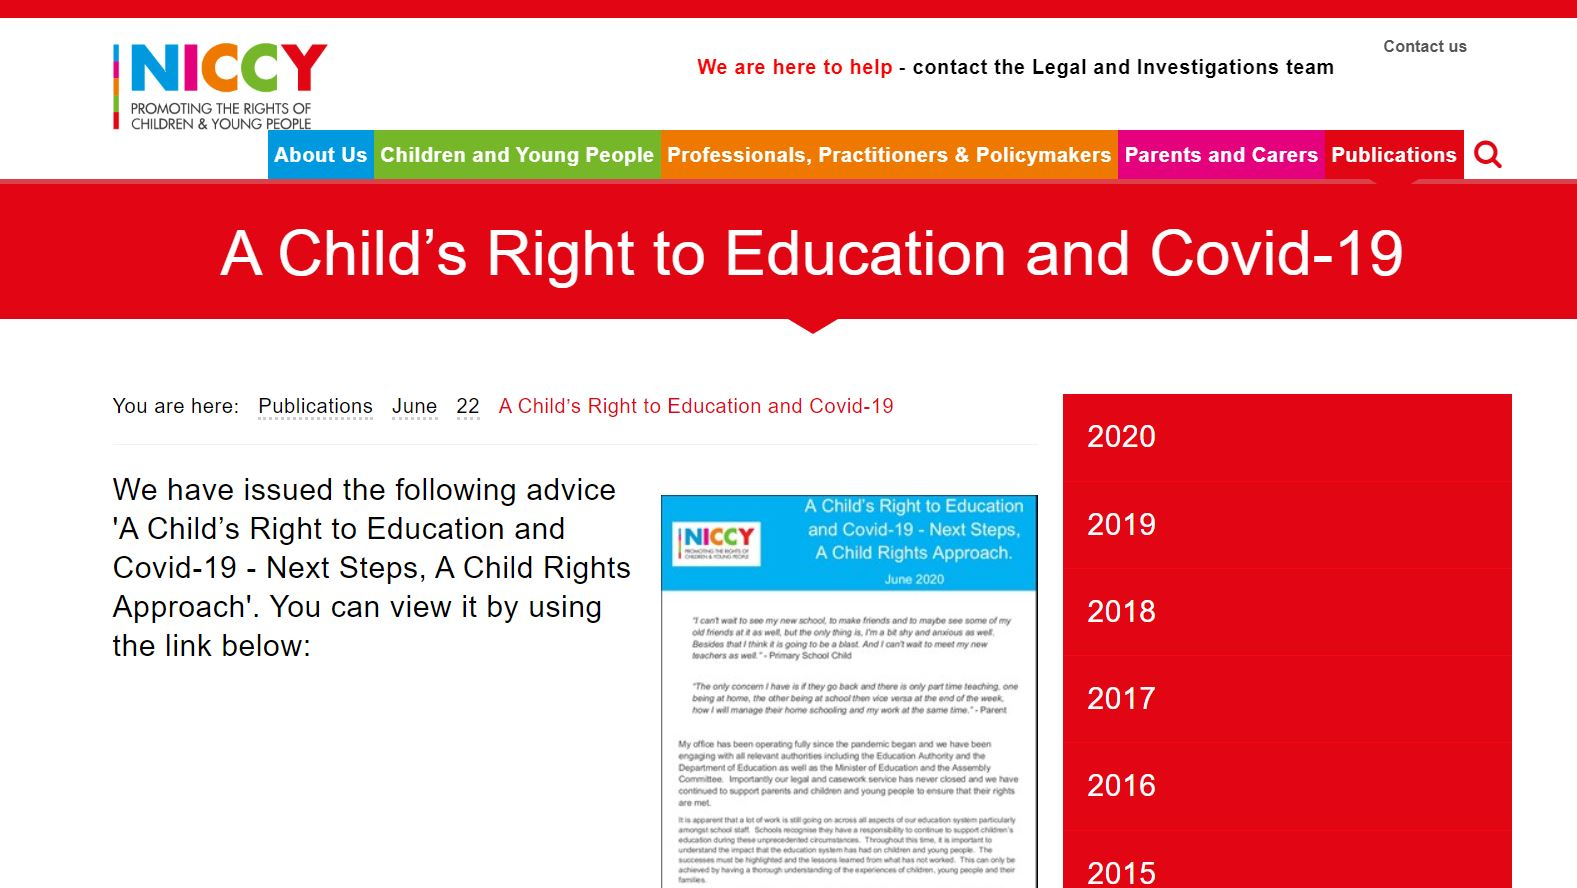 Image of A Child's Right to Education and Covid-19